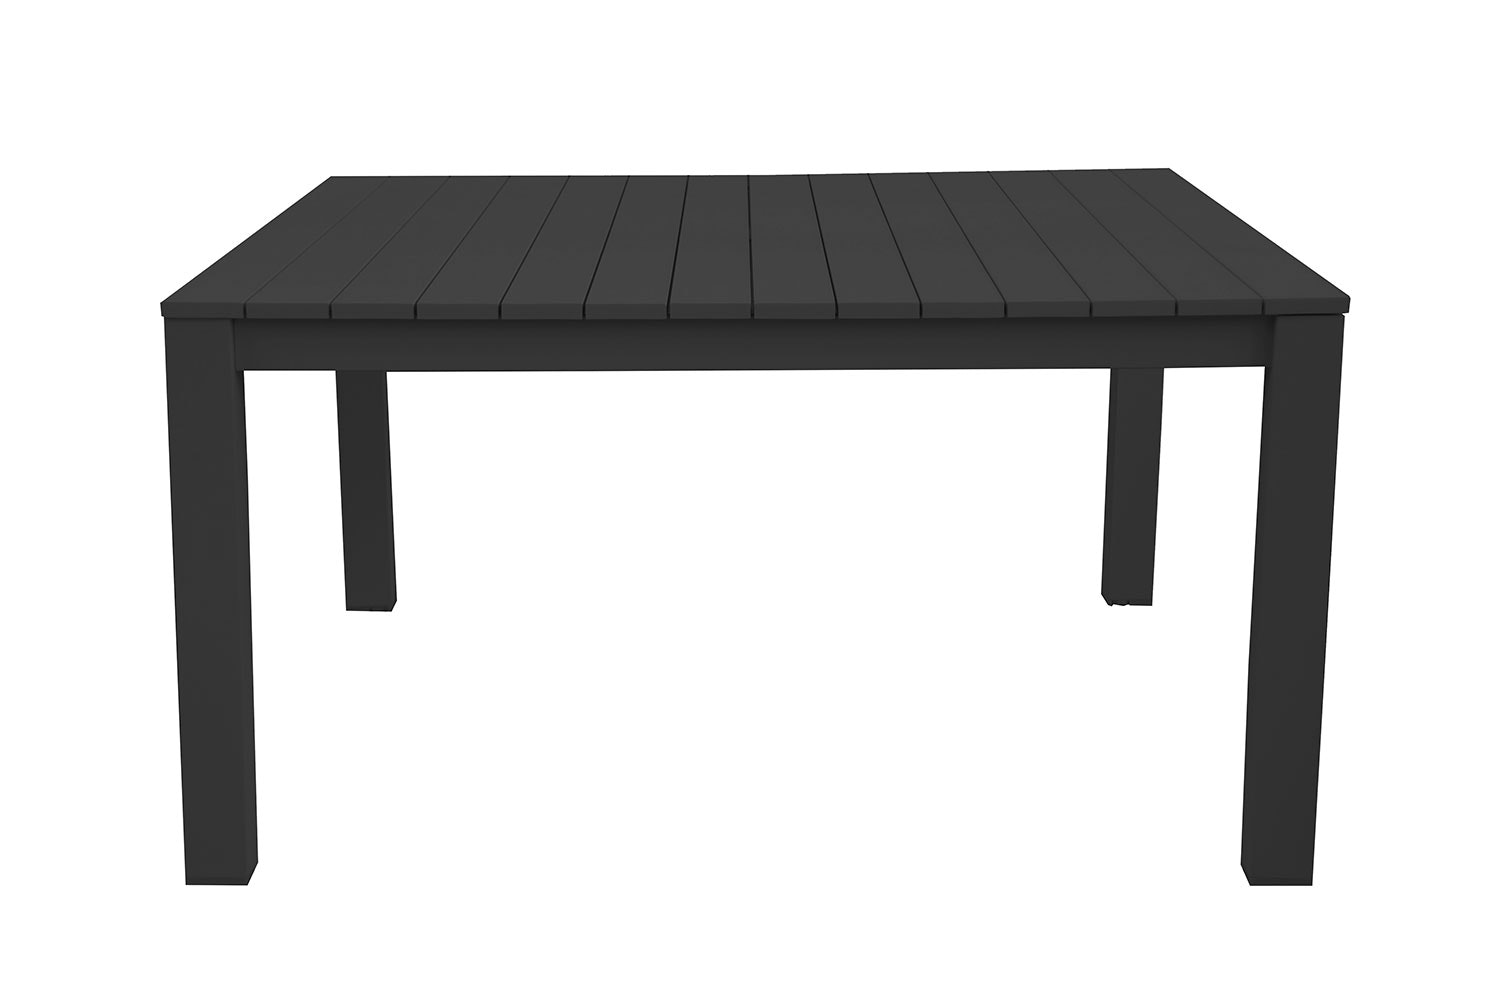 Dune Outdoor Square Dining Table